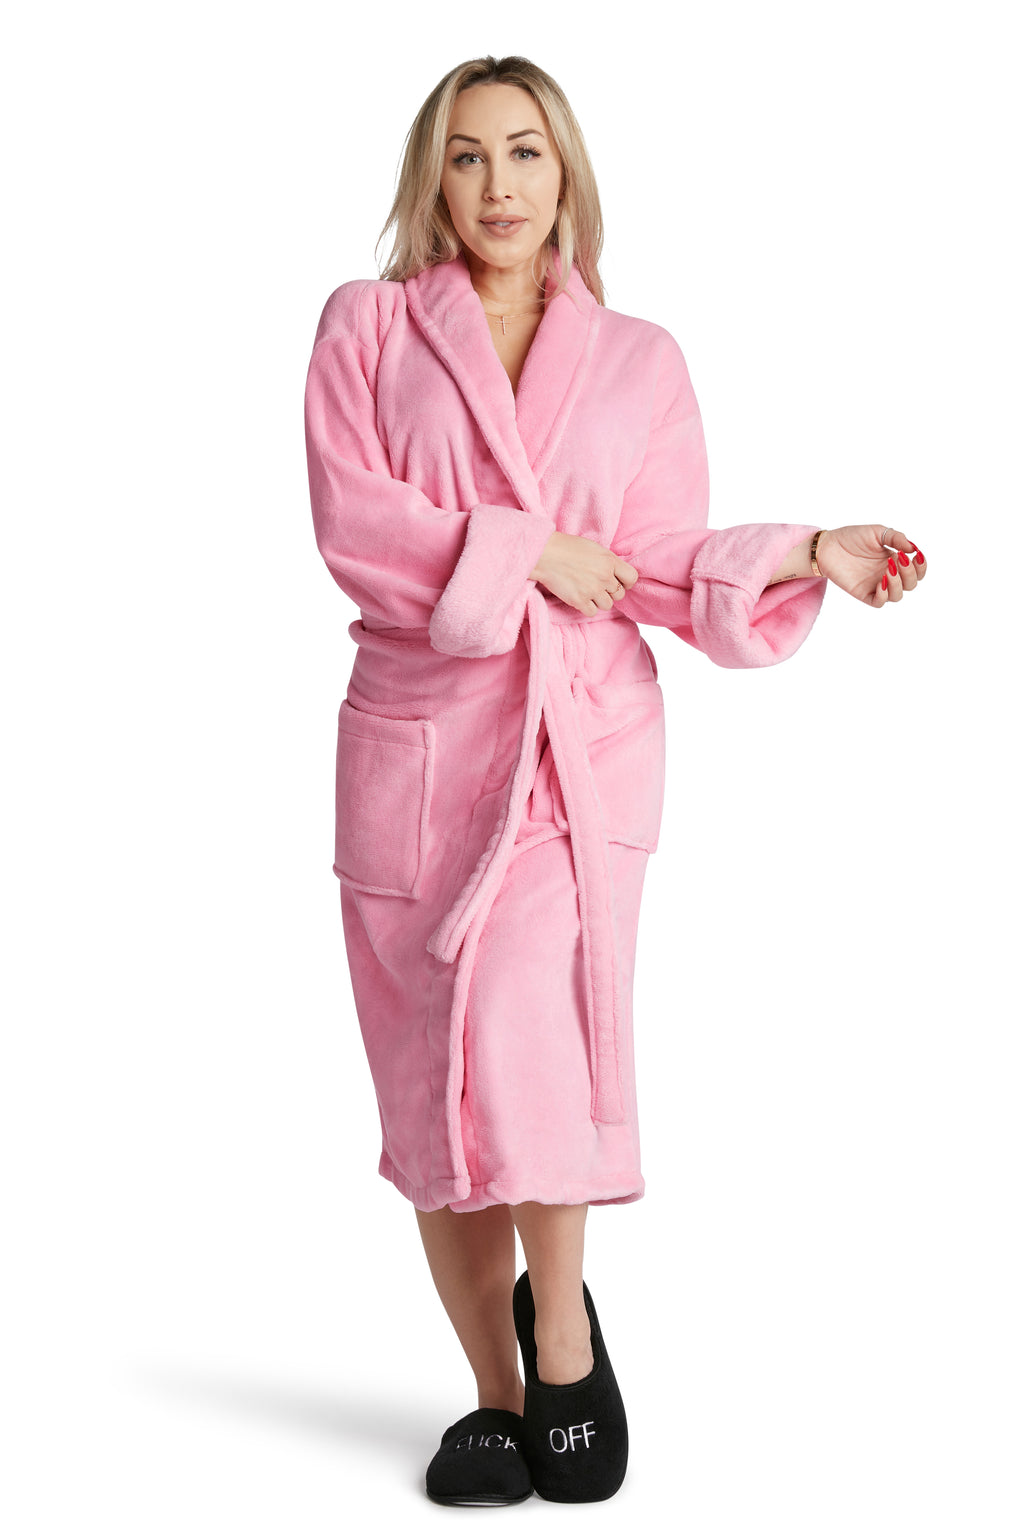 LUXE PLUSH ROBE -Favorite Daughter